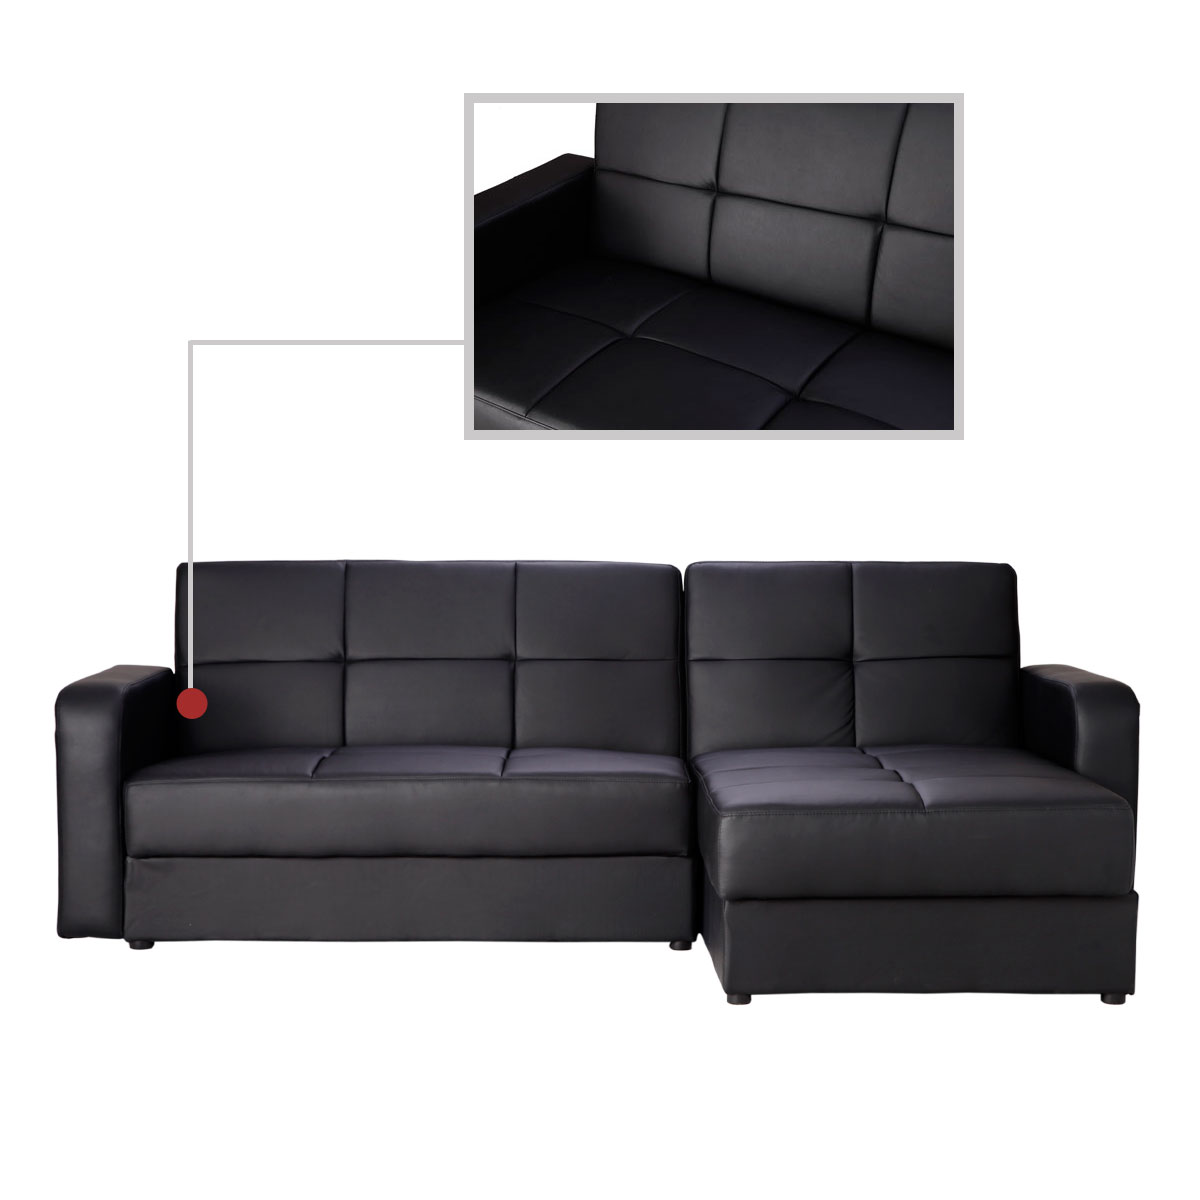 Brand new faux leather corner sofa bed sofabed chaise with for Chaise corner sofa bed